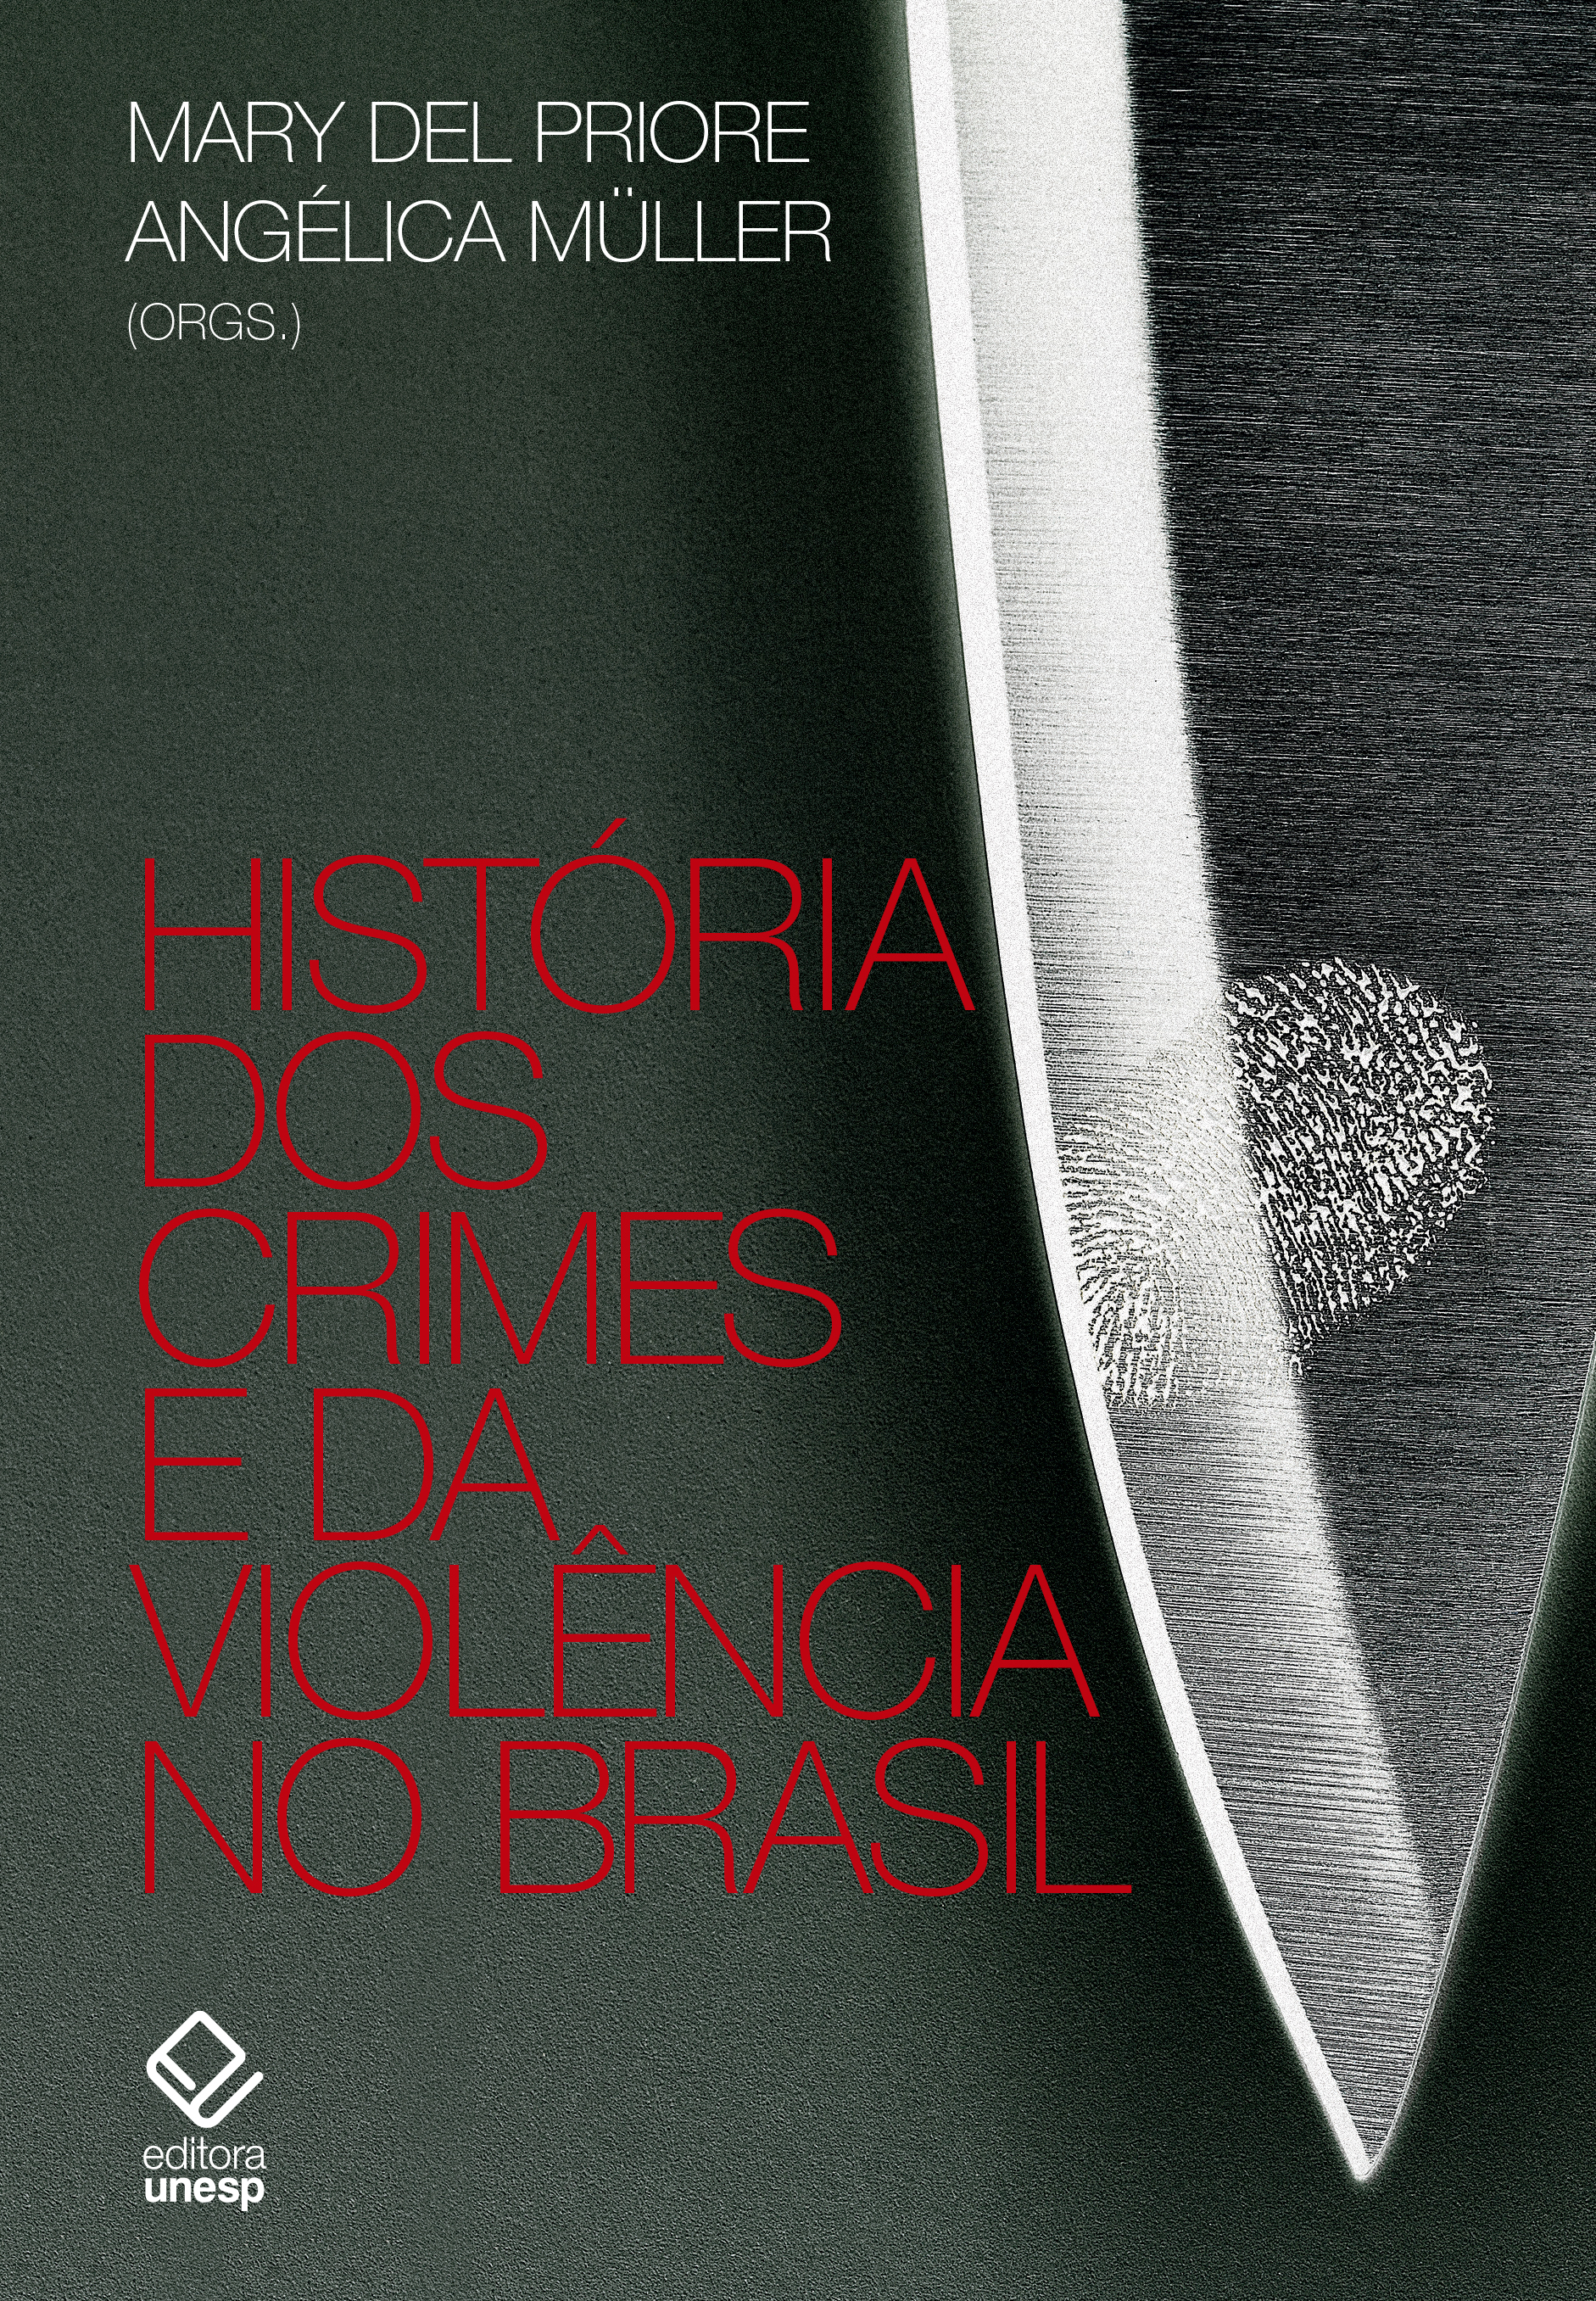 History of crimes and violence in Brazil